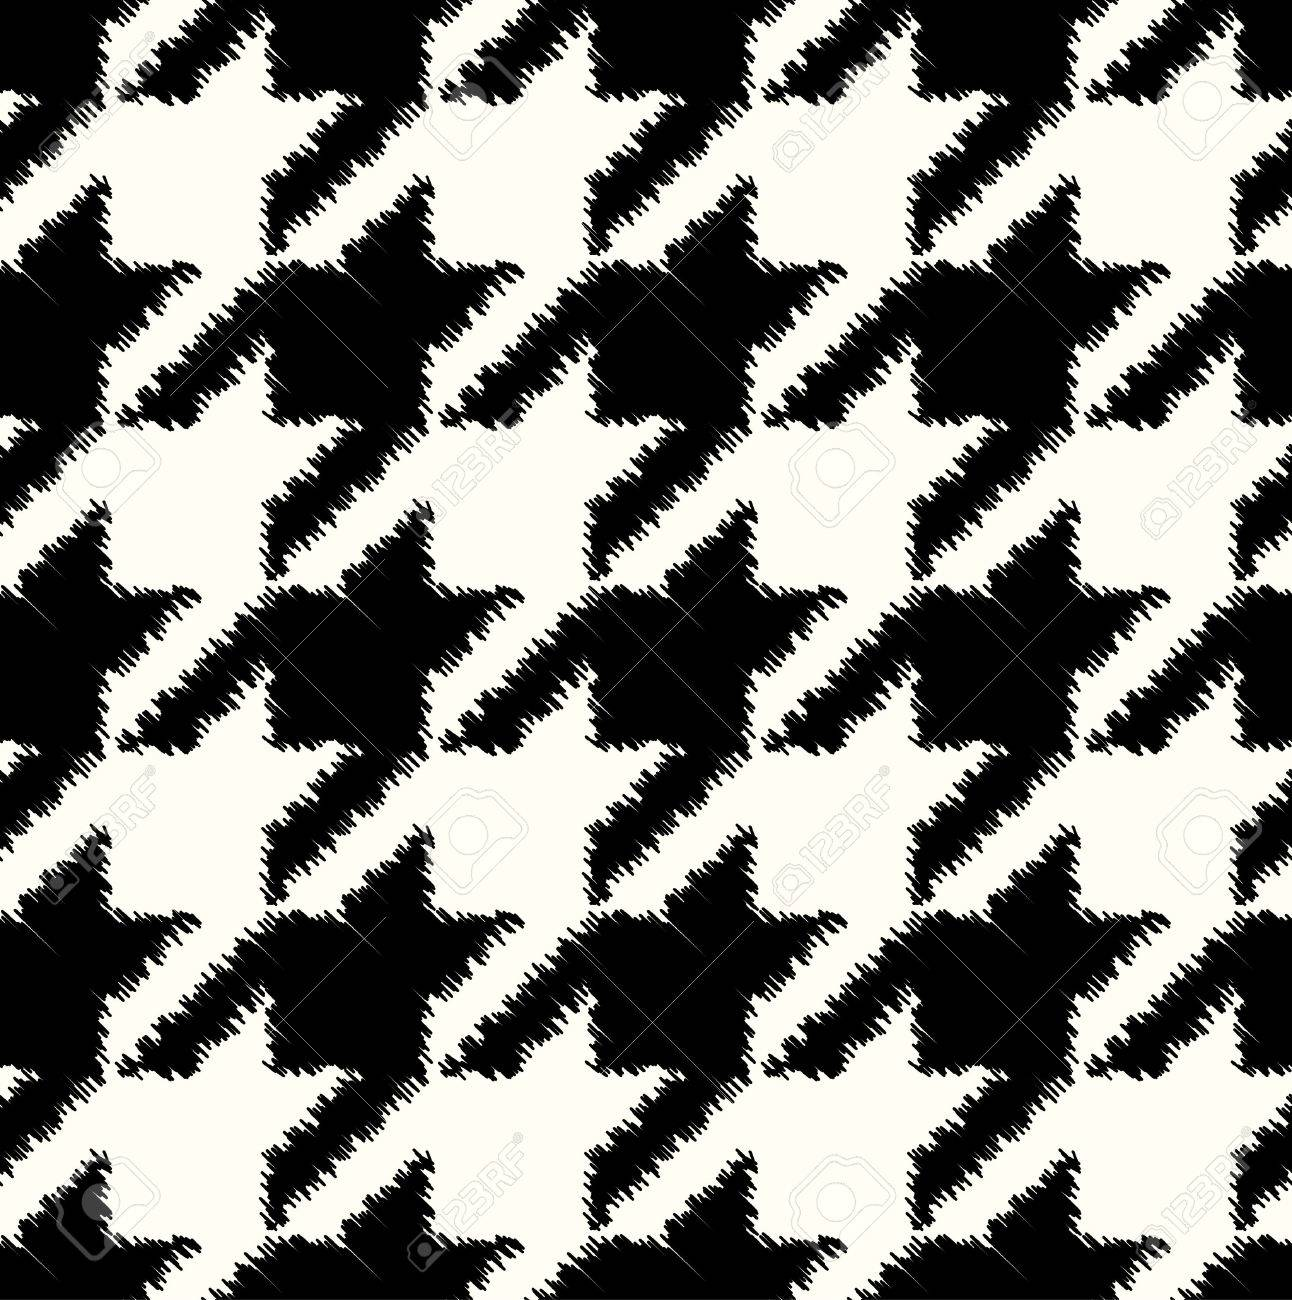 Seamless black and white checkered texture stock images image - Seamless Black And White Houndstooth Checkered Pattern Stock Vector 35082532